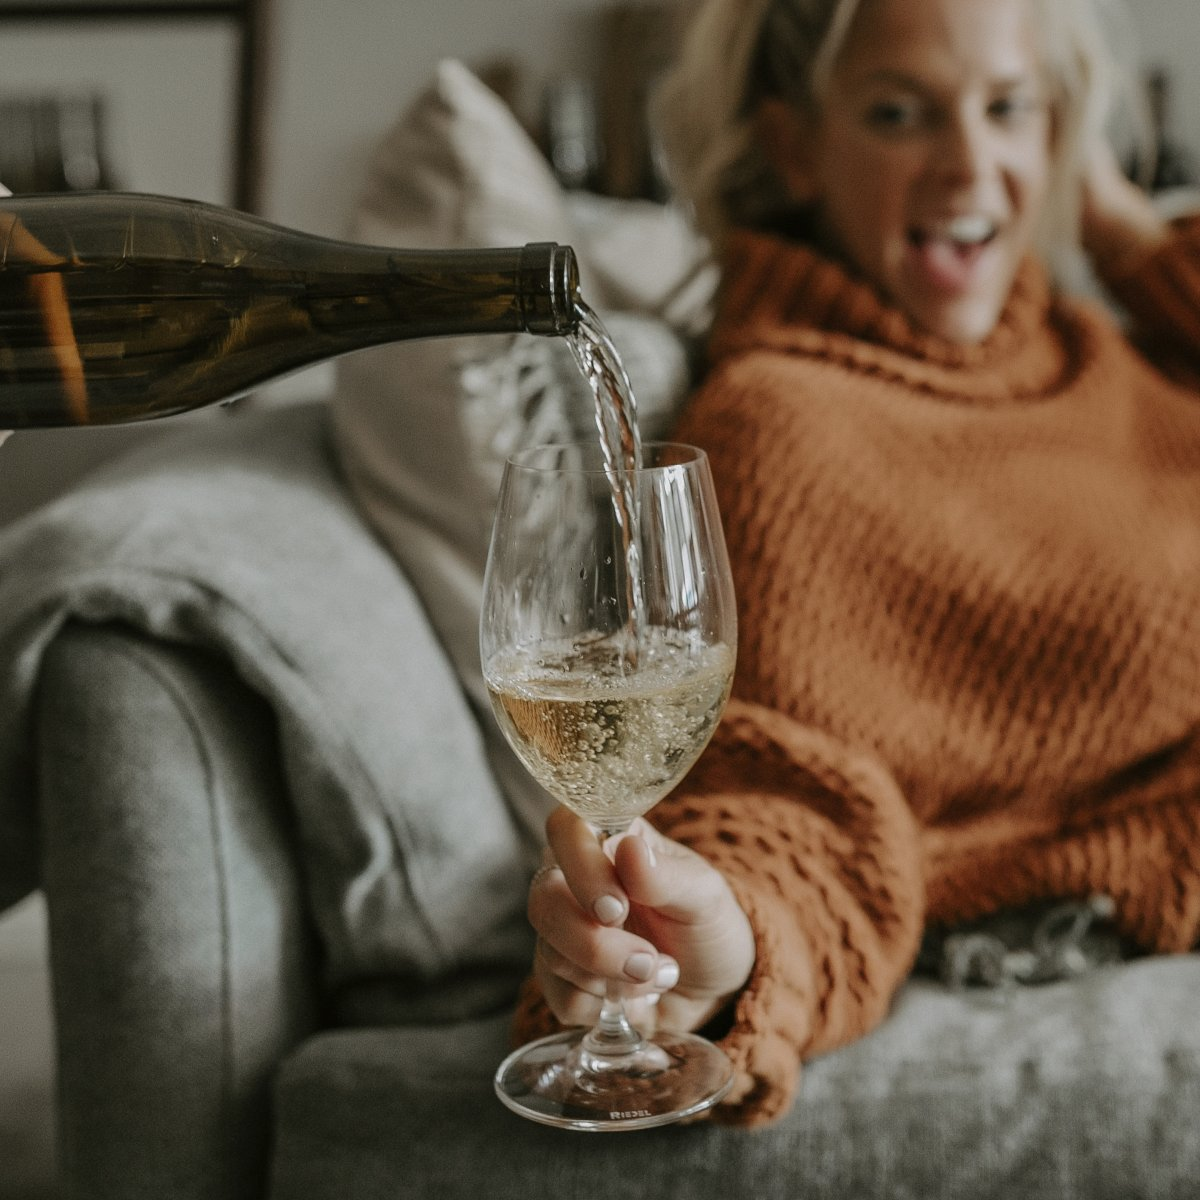 Woman on Couch Wine in Glass